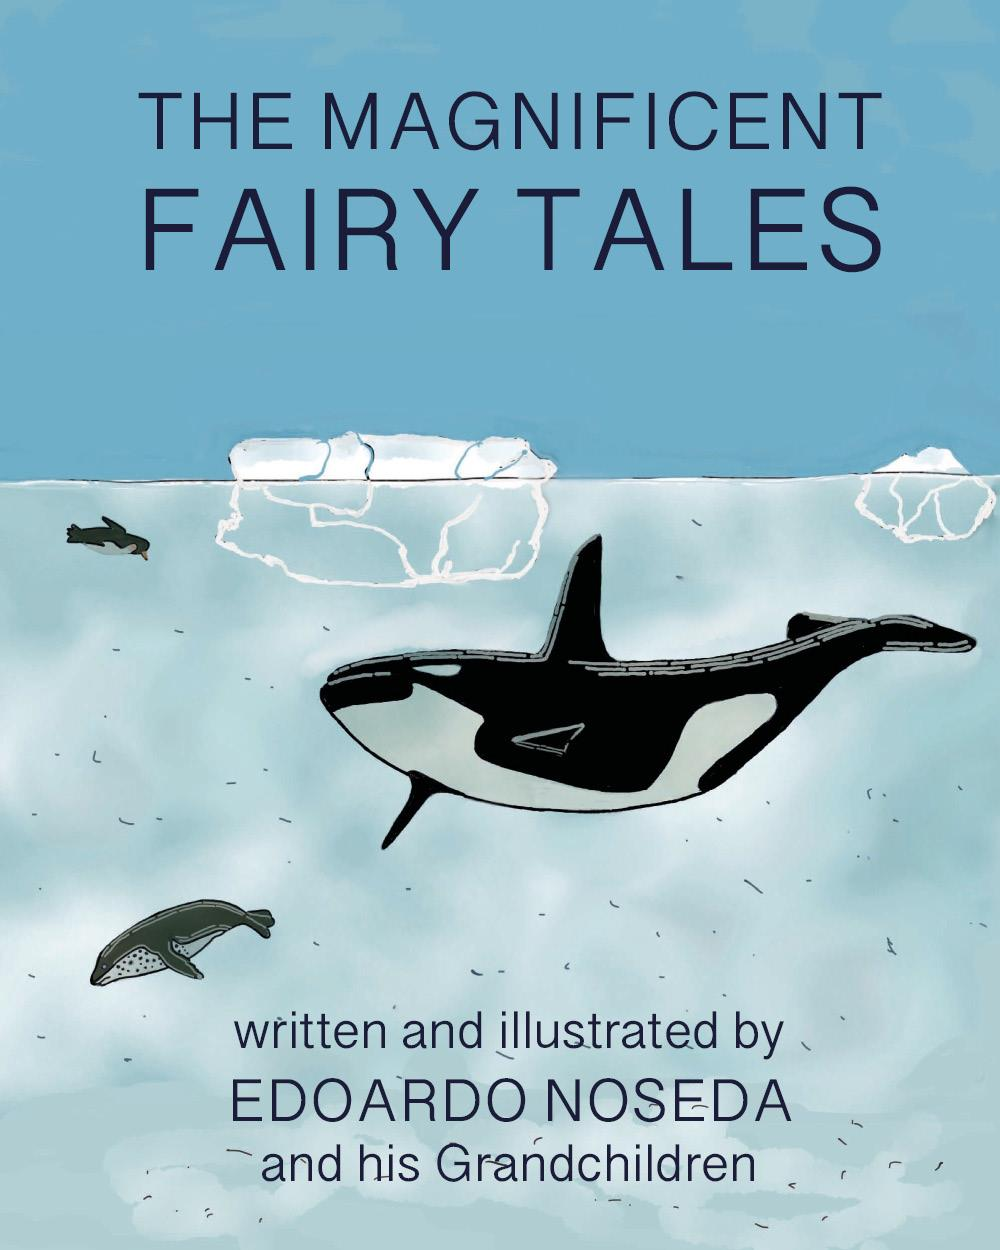 The Magnificent Fairy Tales